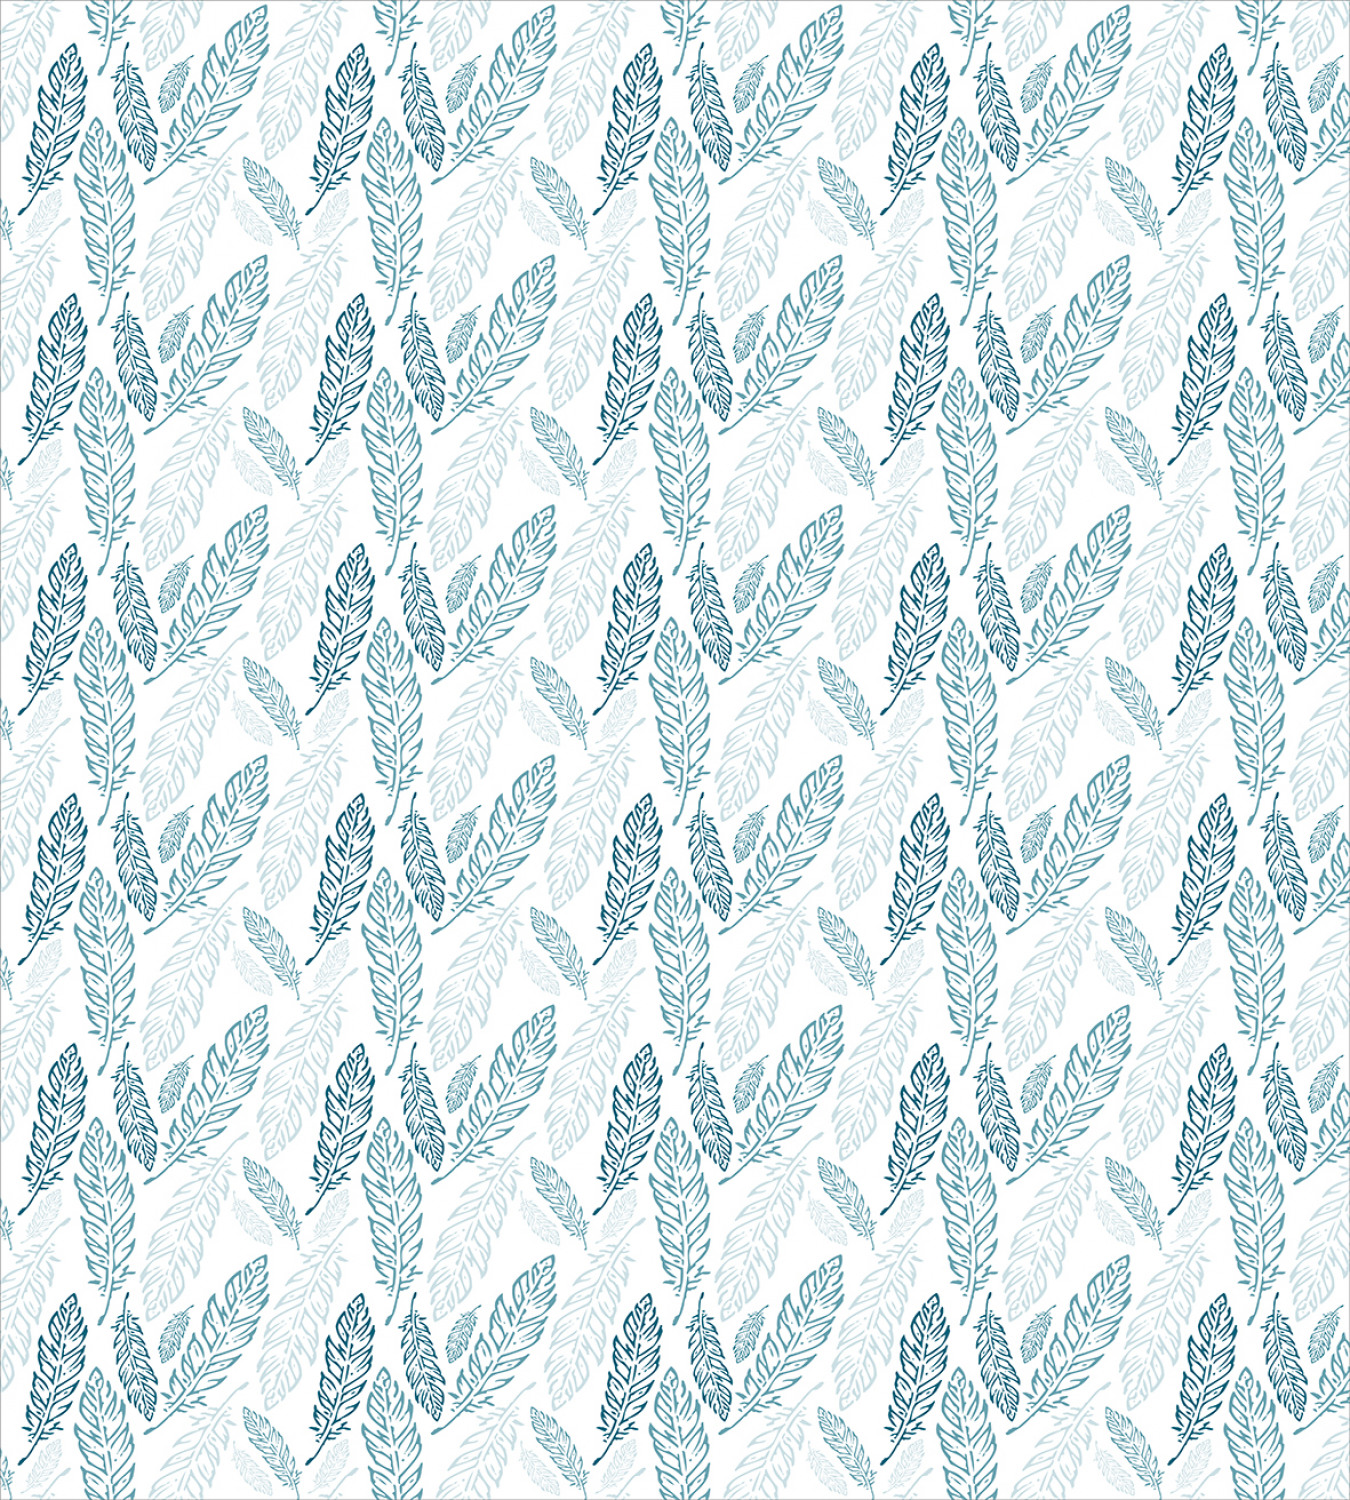 Teal-and-White-Duvet-Cover-Set-Twin-Queen-King-Sizes-with-Pillow-Shams-Ambesonne thumbnail 30